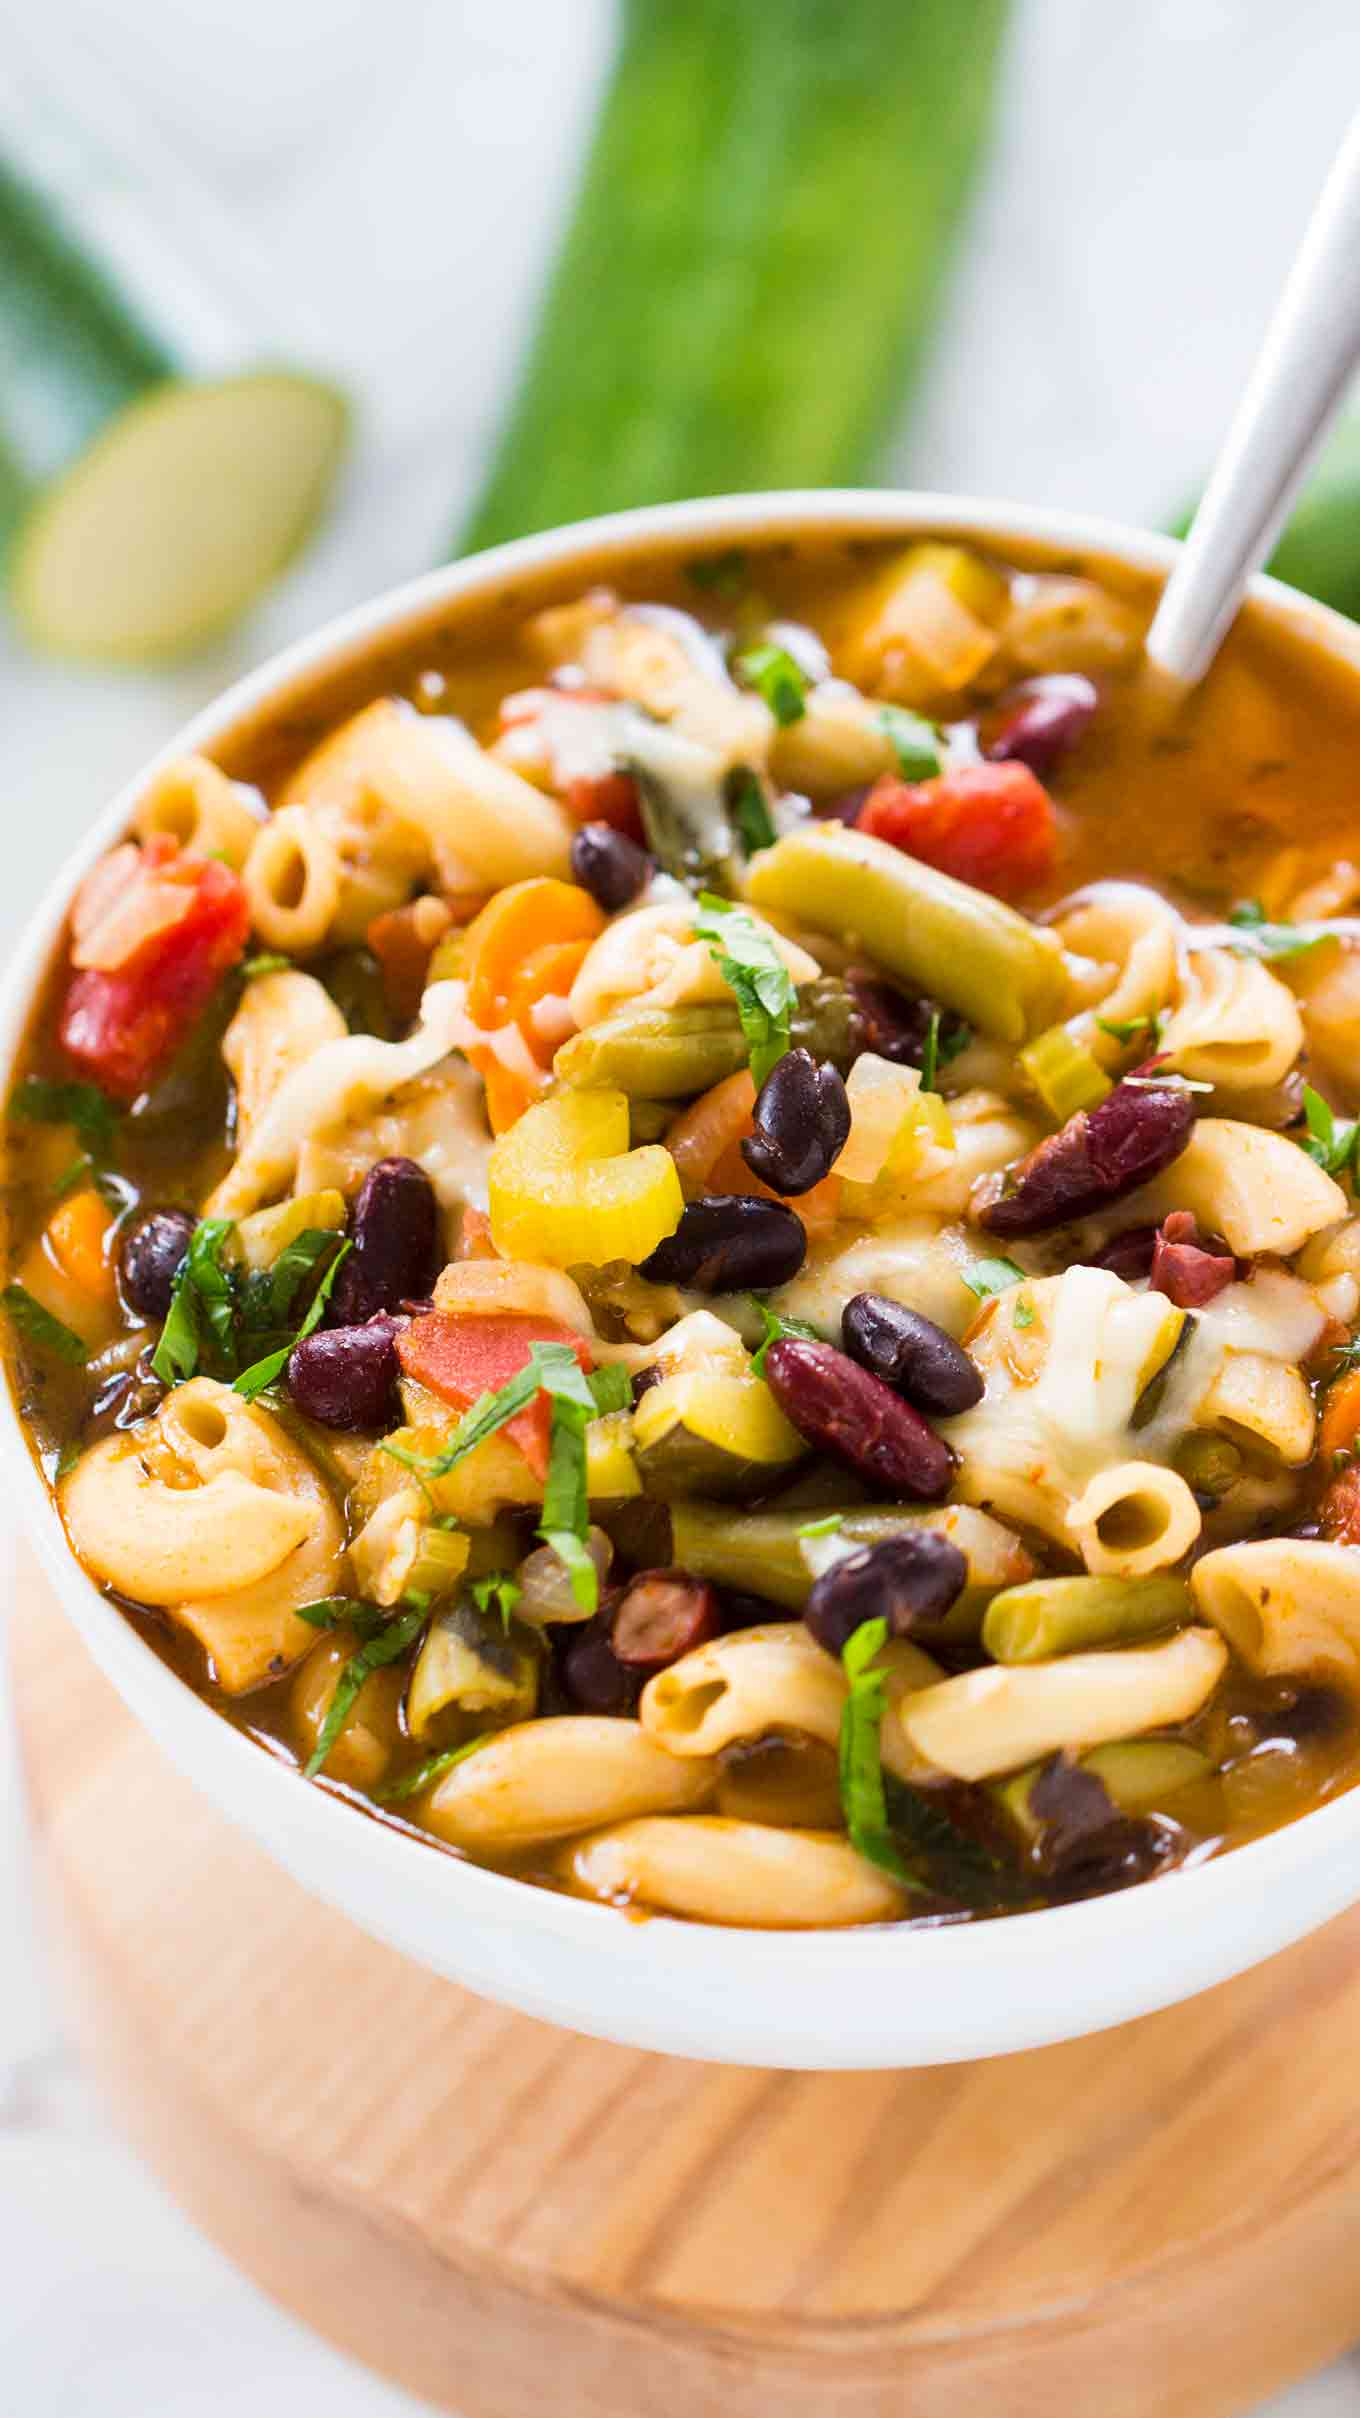 Easy Instant Pot Minestrone Soup is delightfully good, tasty and healthy! Easy to male and packed with so many hearty veggies and beans you can have a few bowls guilt free.